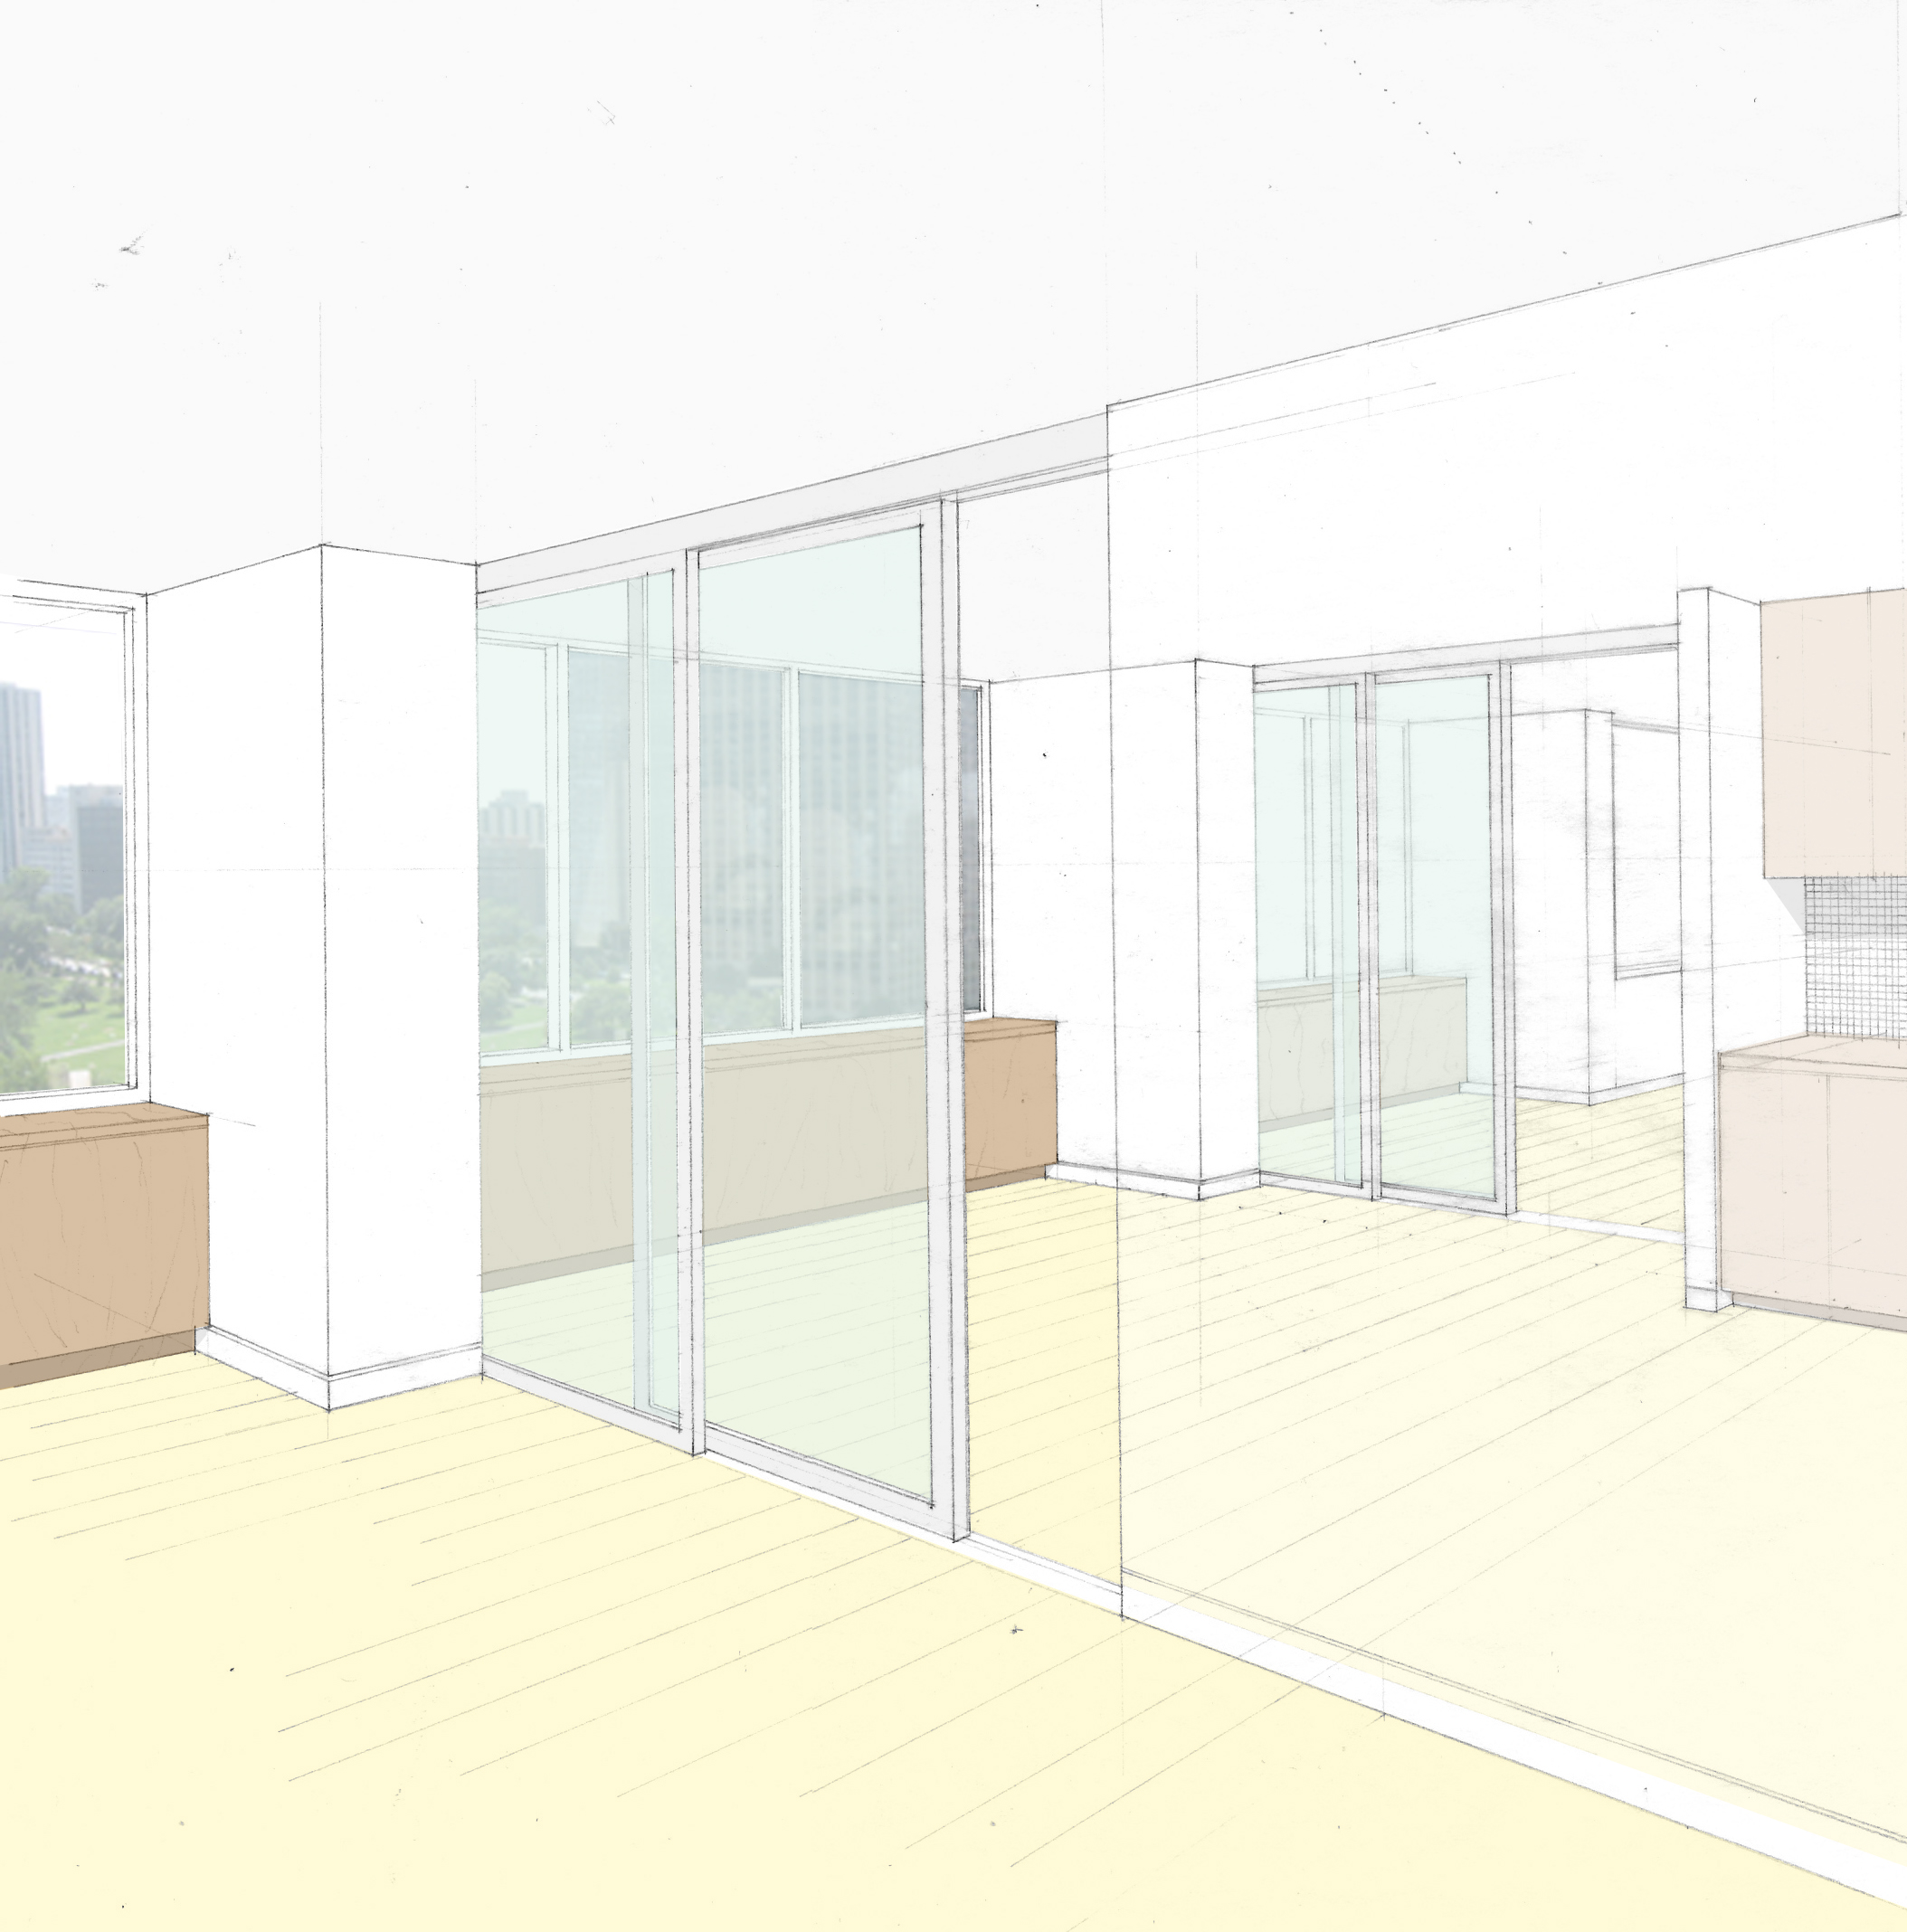 Lake_Shore_Drive_Residence_Interior_Colored_Perspective.jpg